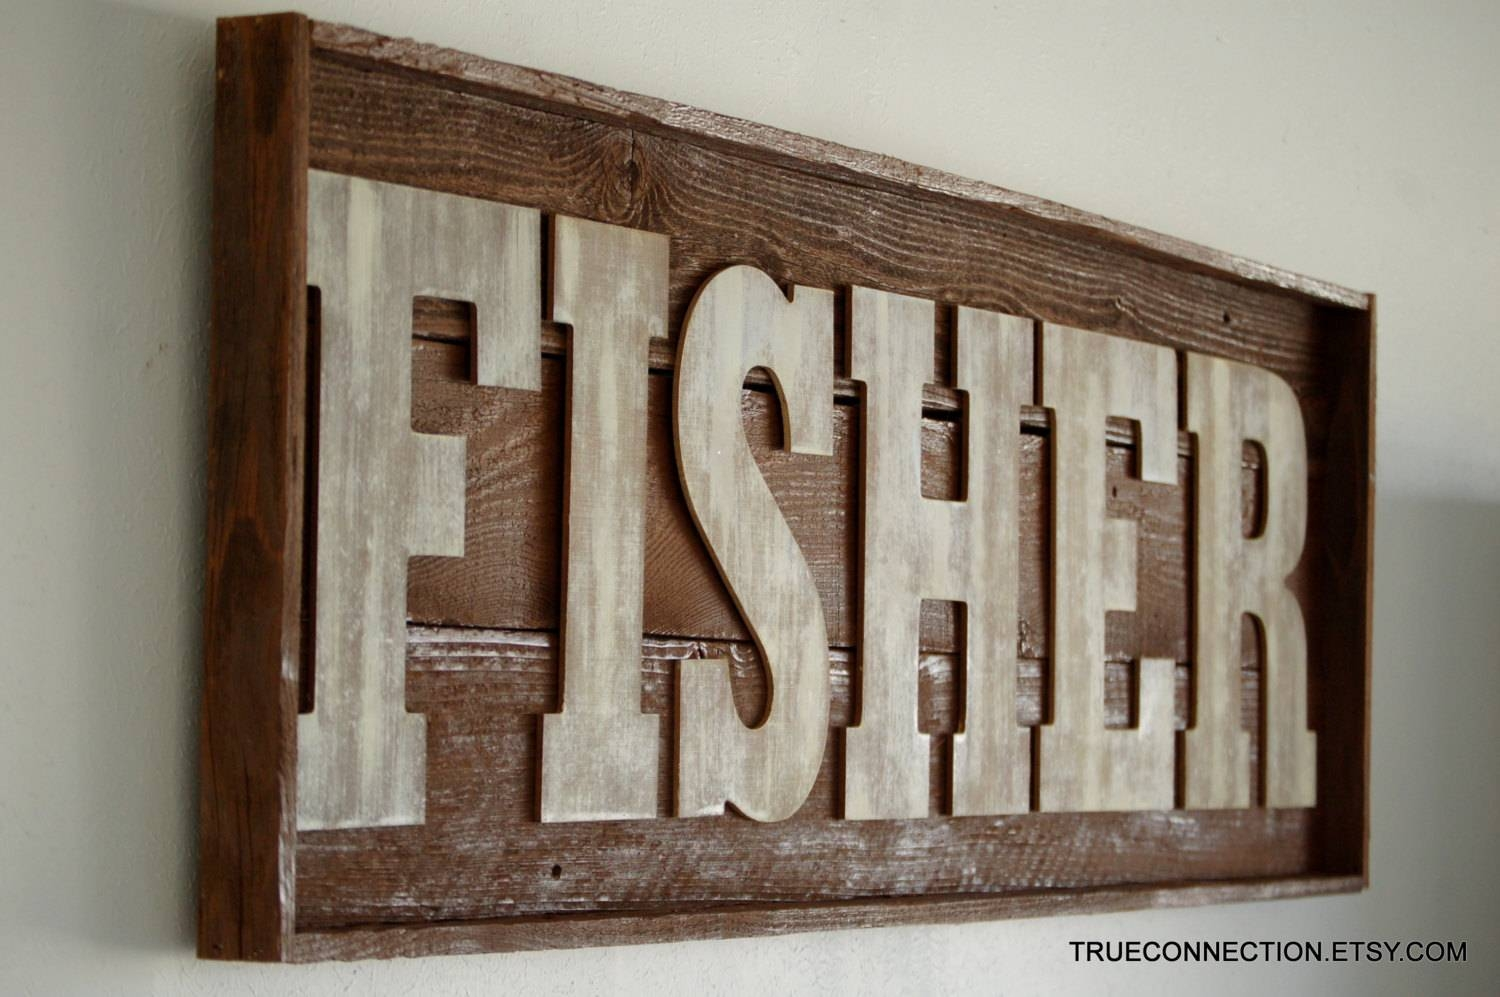 Wall Art Designs: Personalized Wood Wall Art Wall Art Name Sign Intended For Most Recently Released Personalized Wall Art With Names (View 20 of 20)